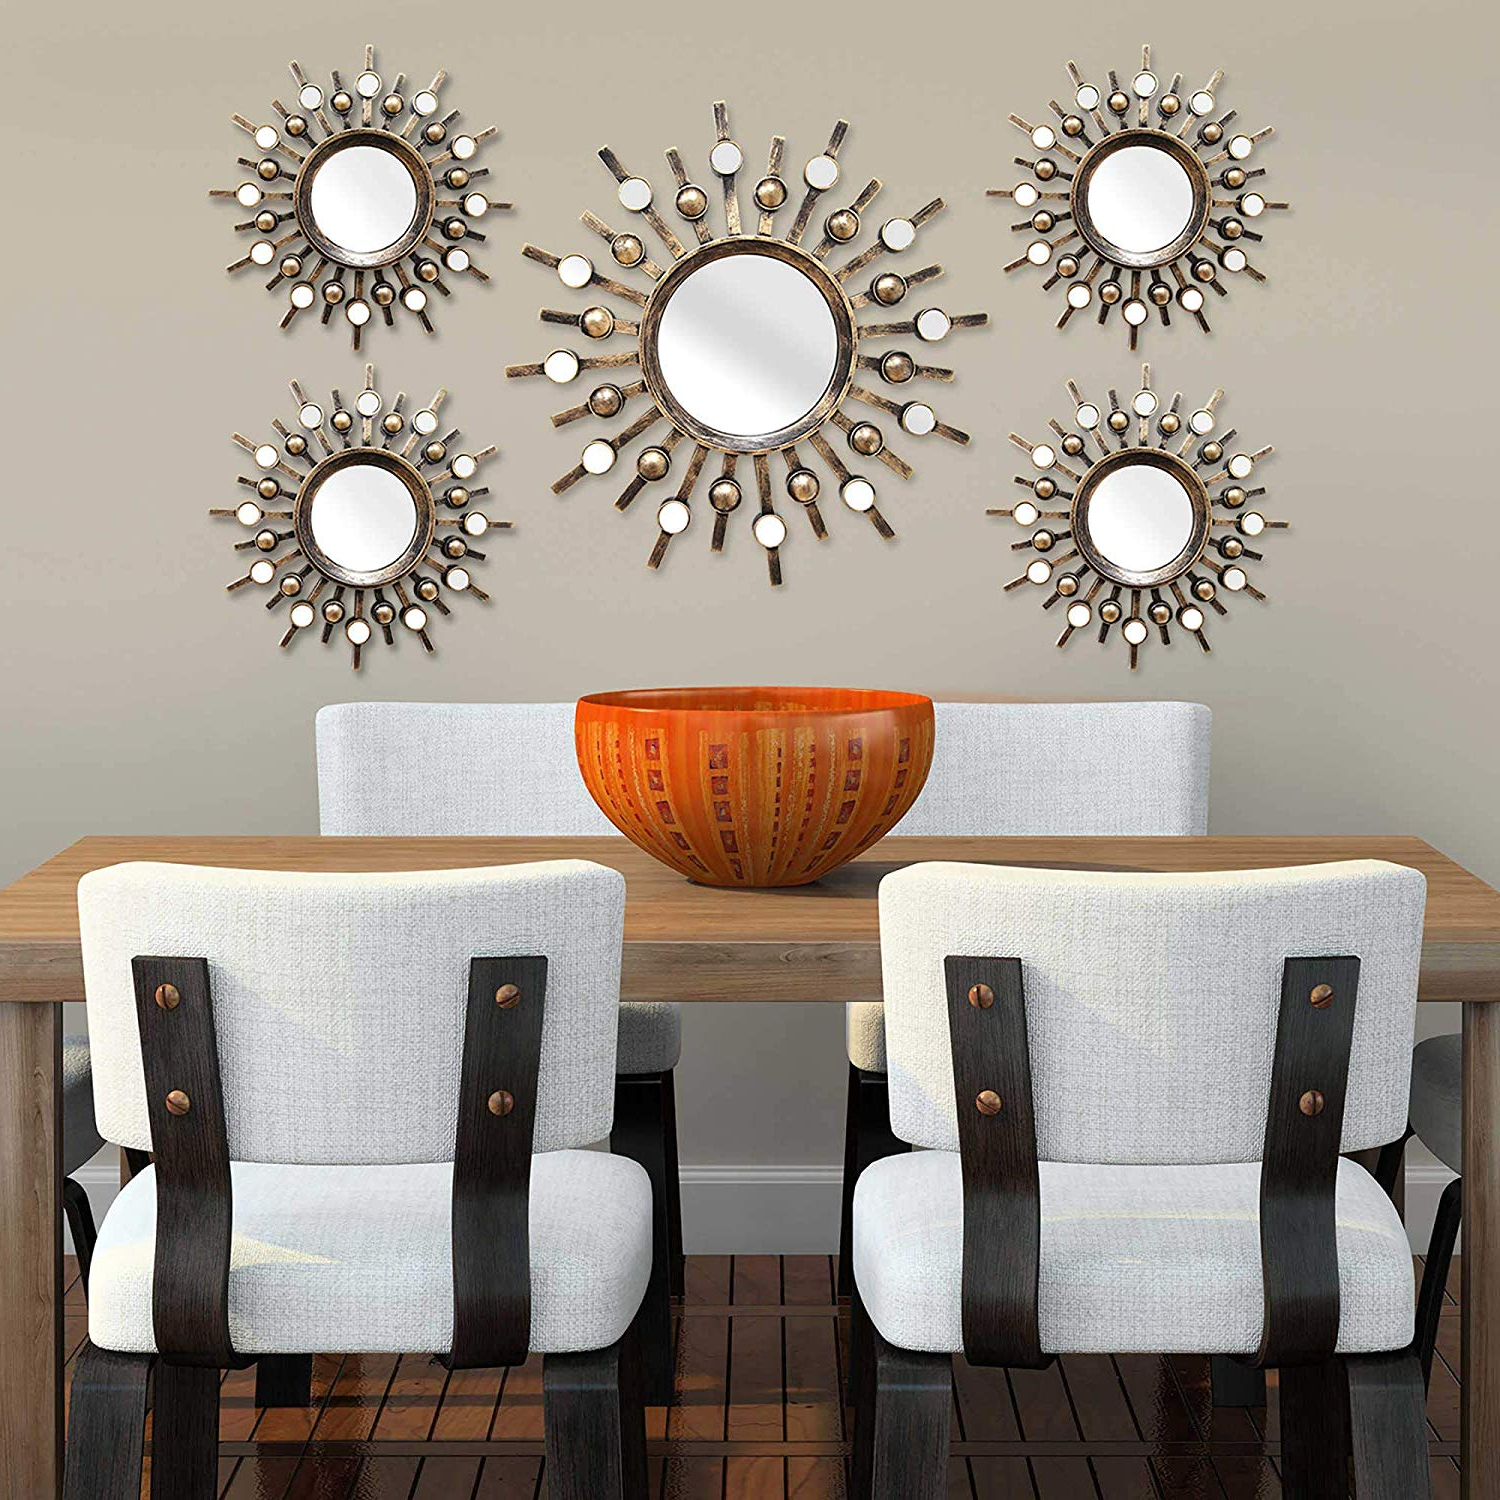 Stratton Home Decor Burst Bronze Wall Mirrors Set Of 5, Shd0087 Pertaining To Current Deco Wall Mirrors (View 19 of 20)